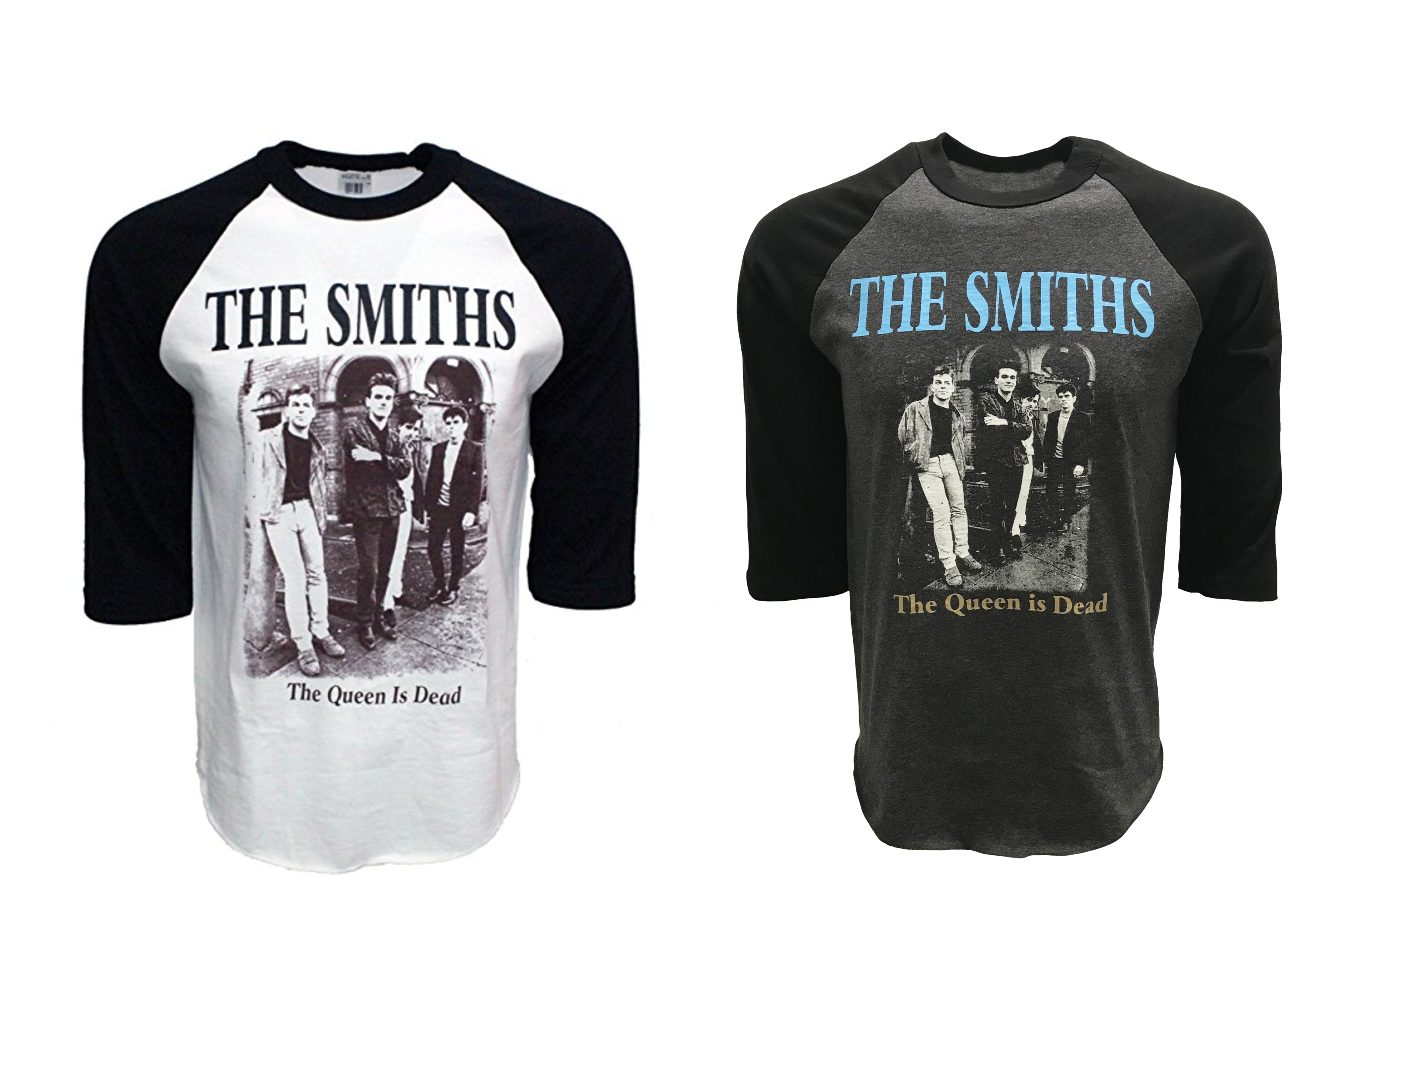 The Smiths Band The Queen is Dead Raglan Baseball Tee 1